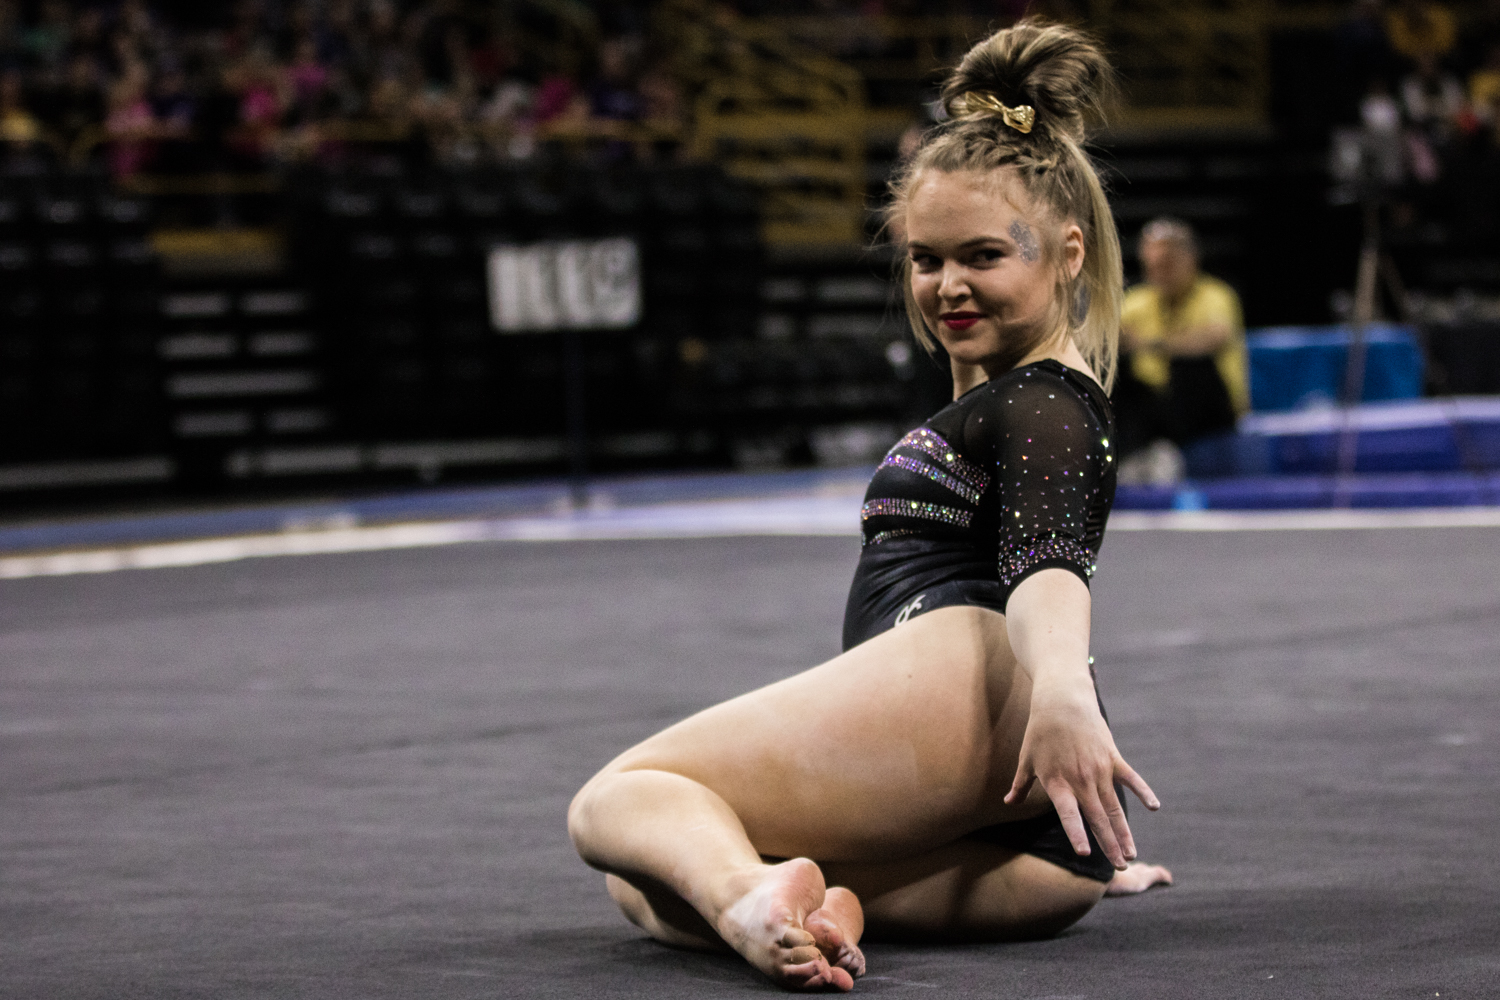 Iowa%27s+Charlotte+Sullivan+competes+on+floor+during+a+women%27s+gymnastics+meet+between+Iowa+and+Iowa+State+at+Carver-Hawkeye+Arena+on+Friday%2C+March+1%2C+2019.+Sullivan+scored+9.800+in+the+event.+The+Hawkeyes%2C+celebrating+senior+night%2C+fell+to+the+Cyclones%2C+196.275-196.250.